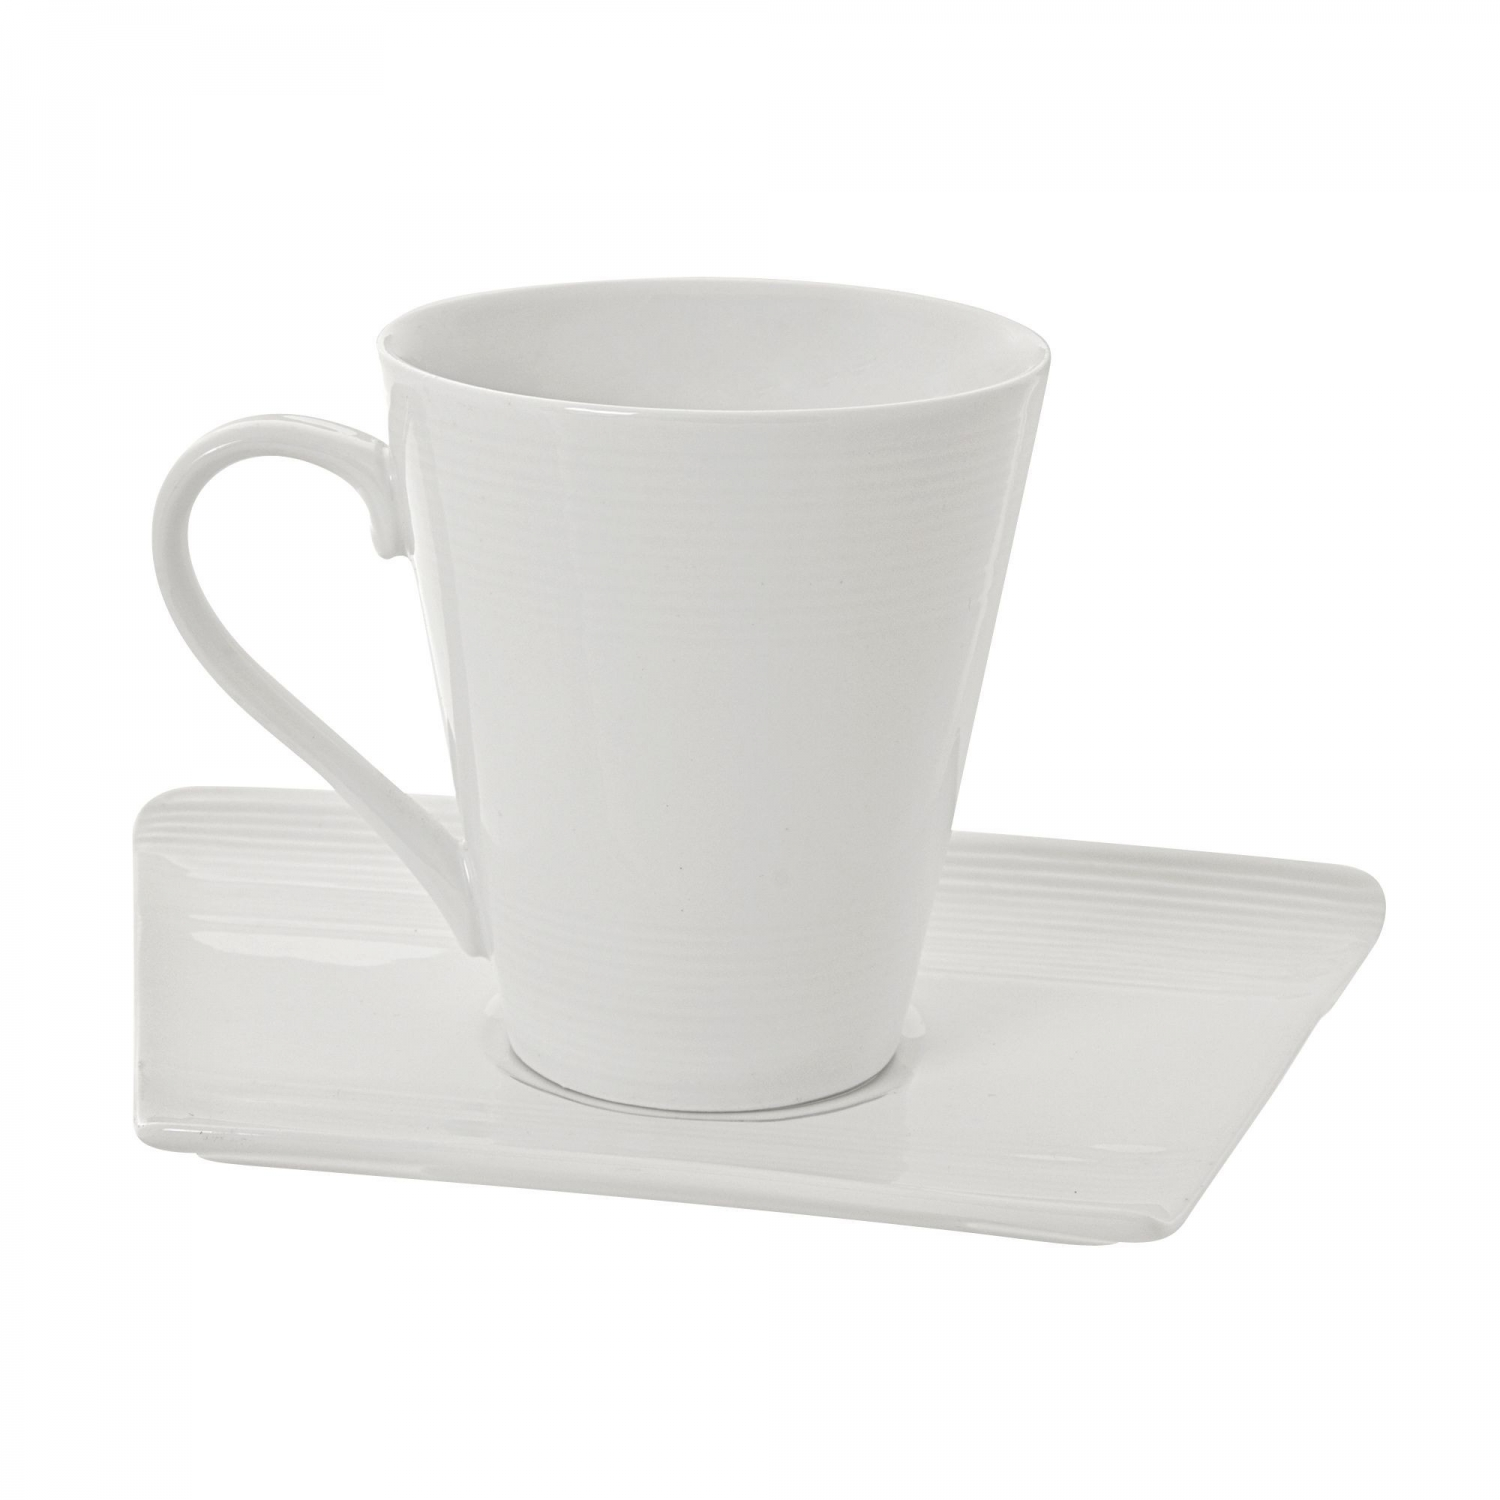 10 Strawberry Street WTR-CUPZEN 8 oz. Whittier Zen Trapezoid Cup and Saucer - 32 pcs